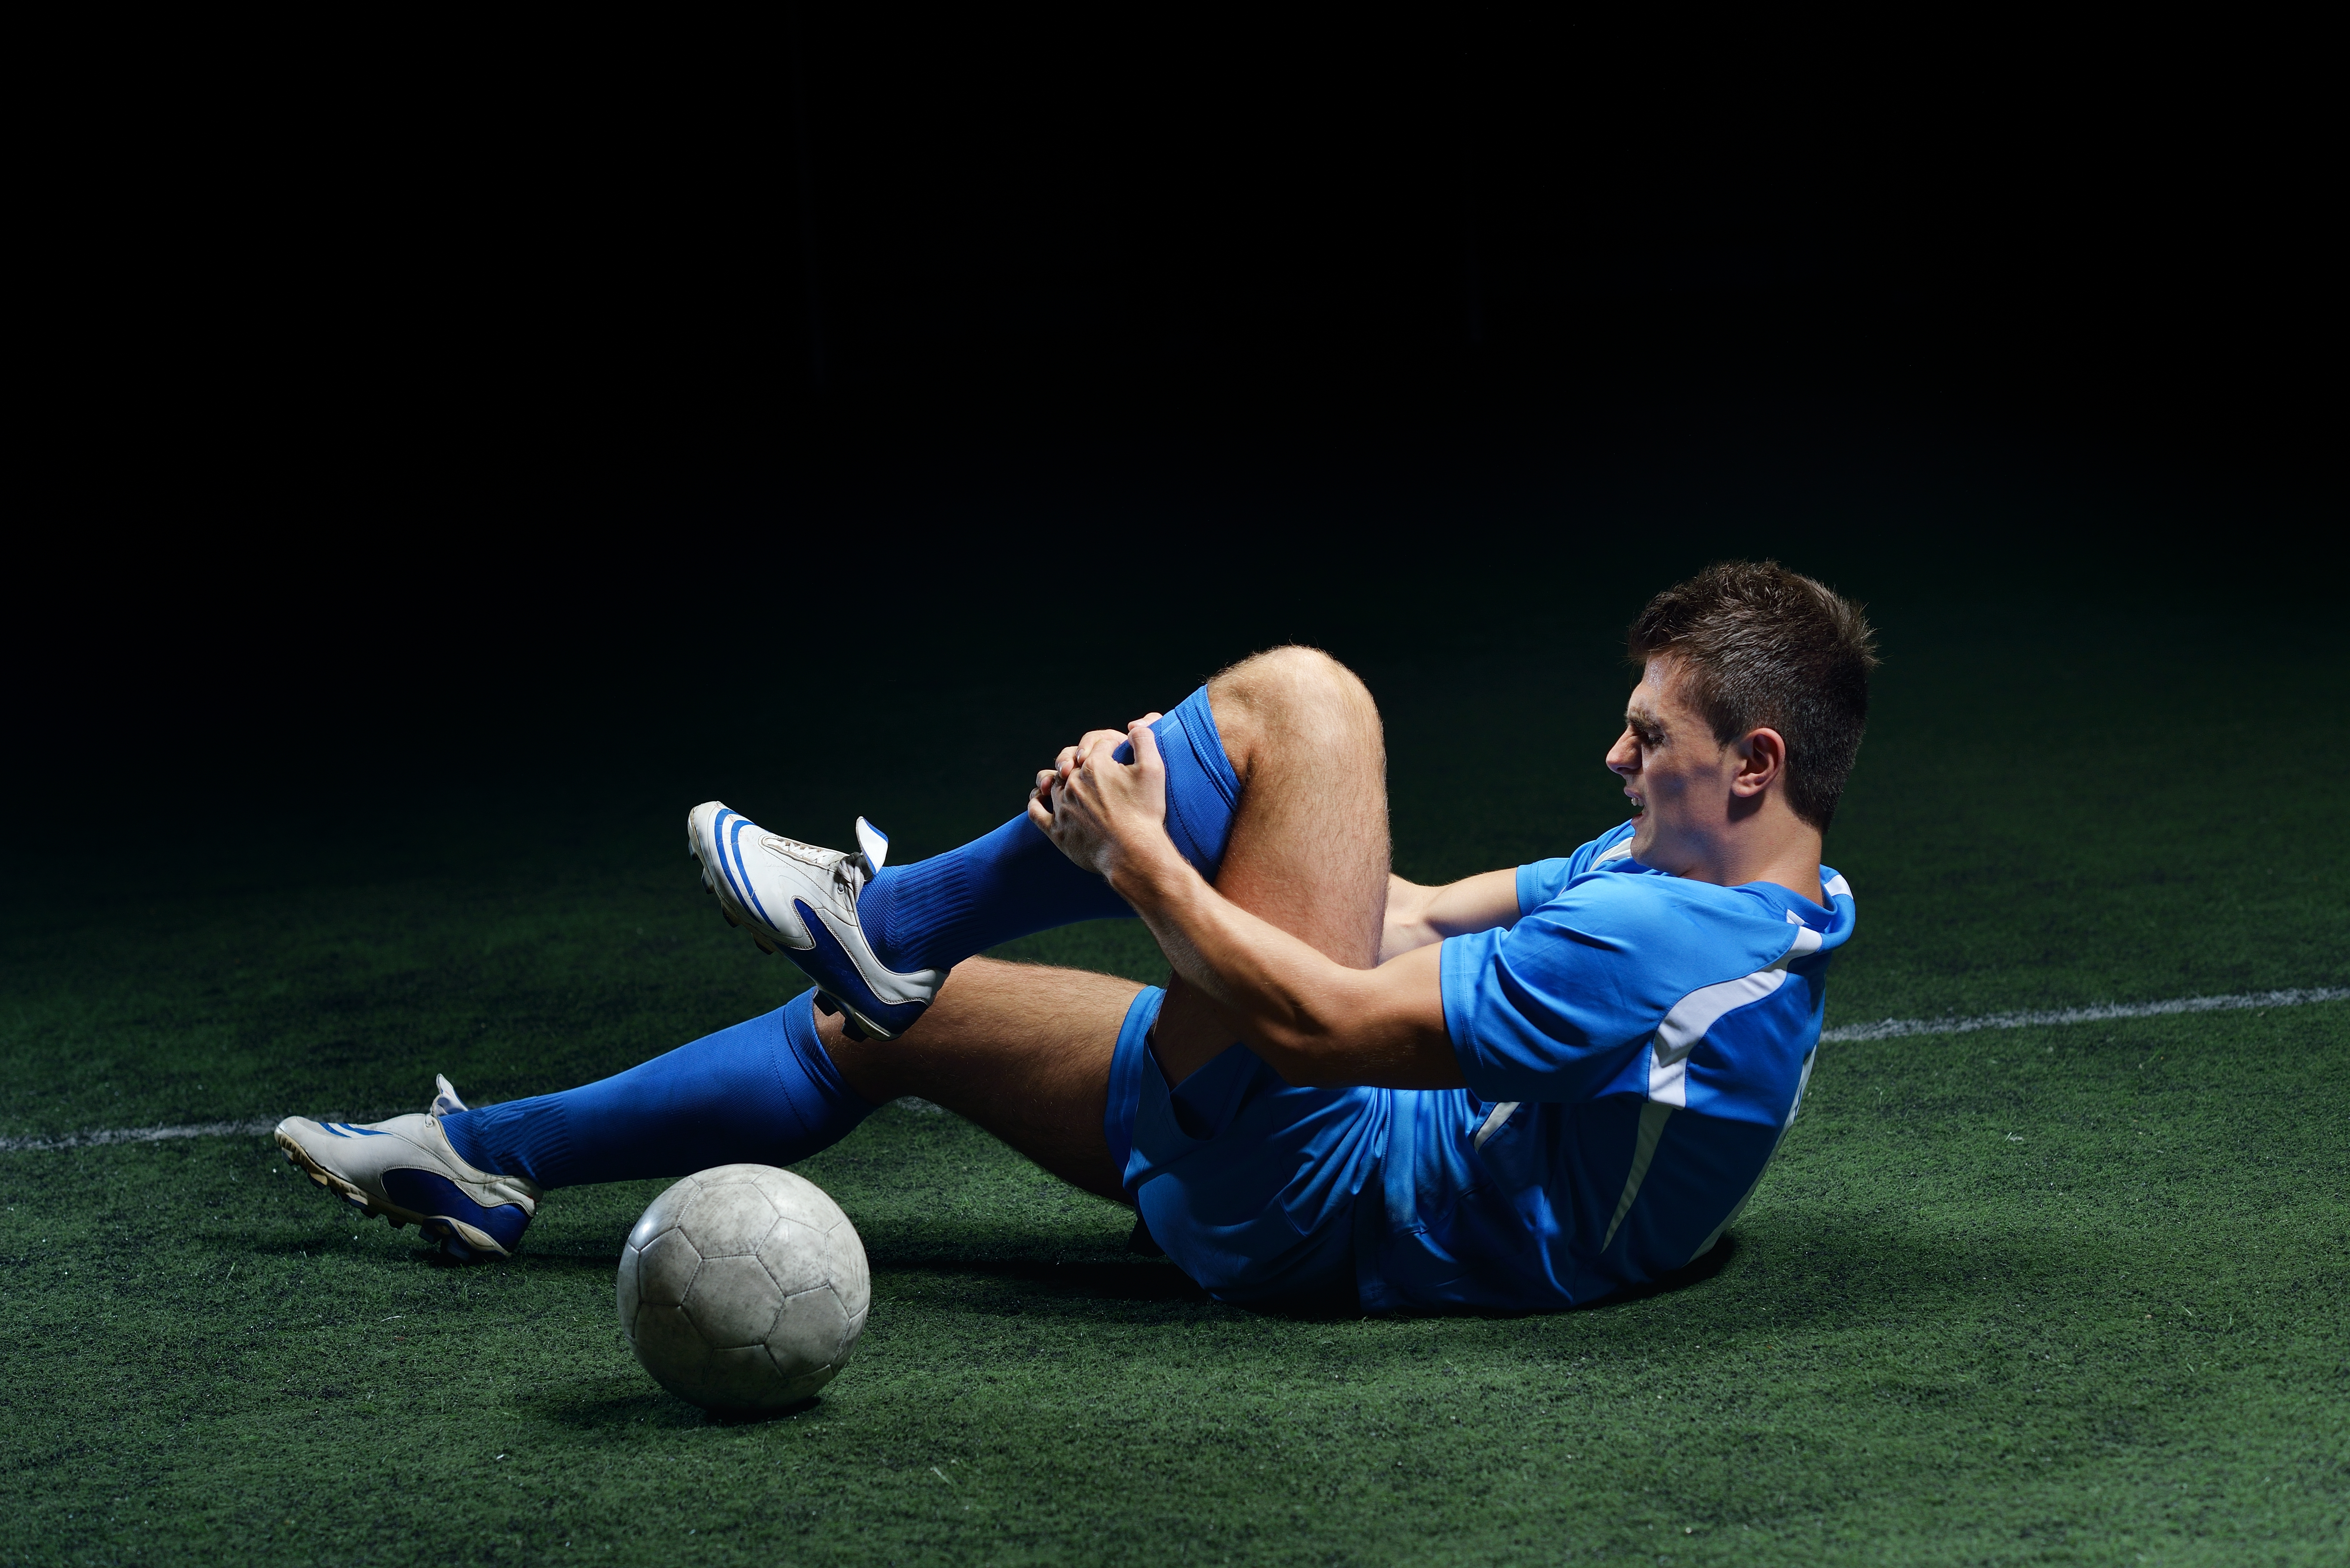 bigstock-soccer-player-have-pain-injury-38905792